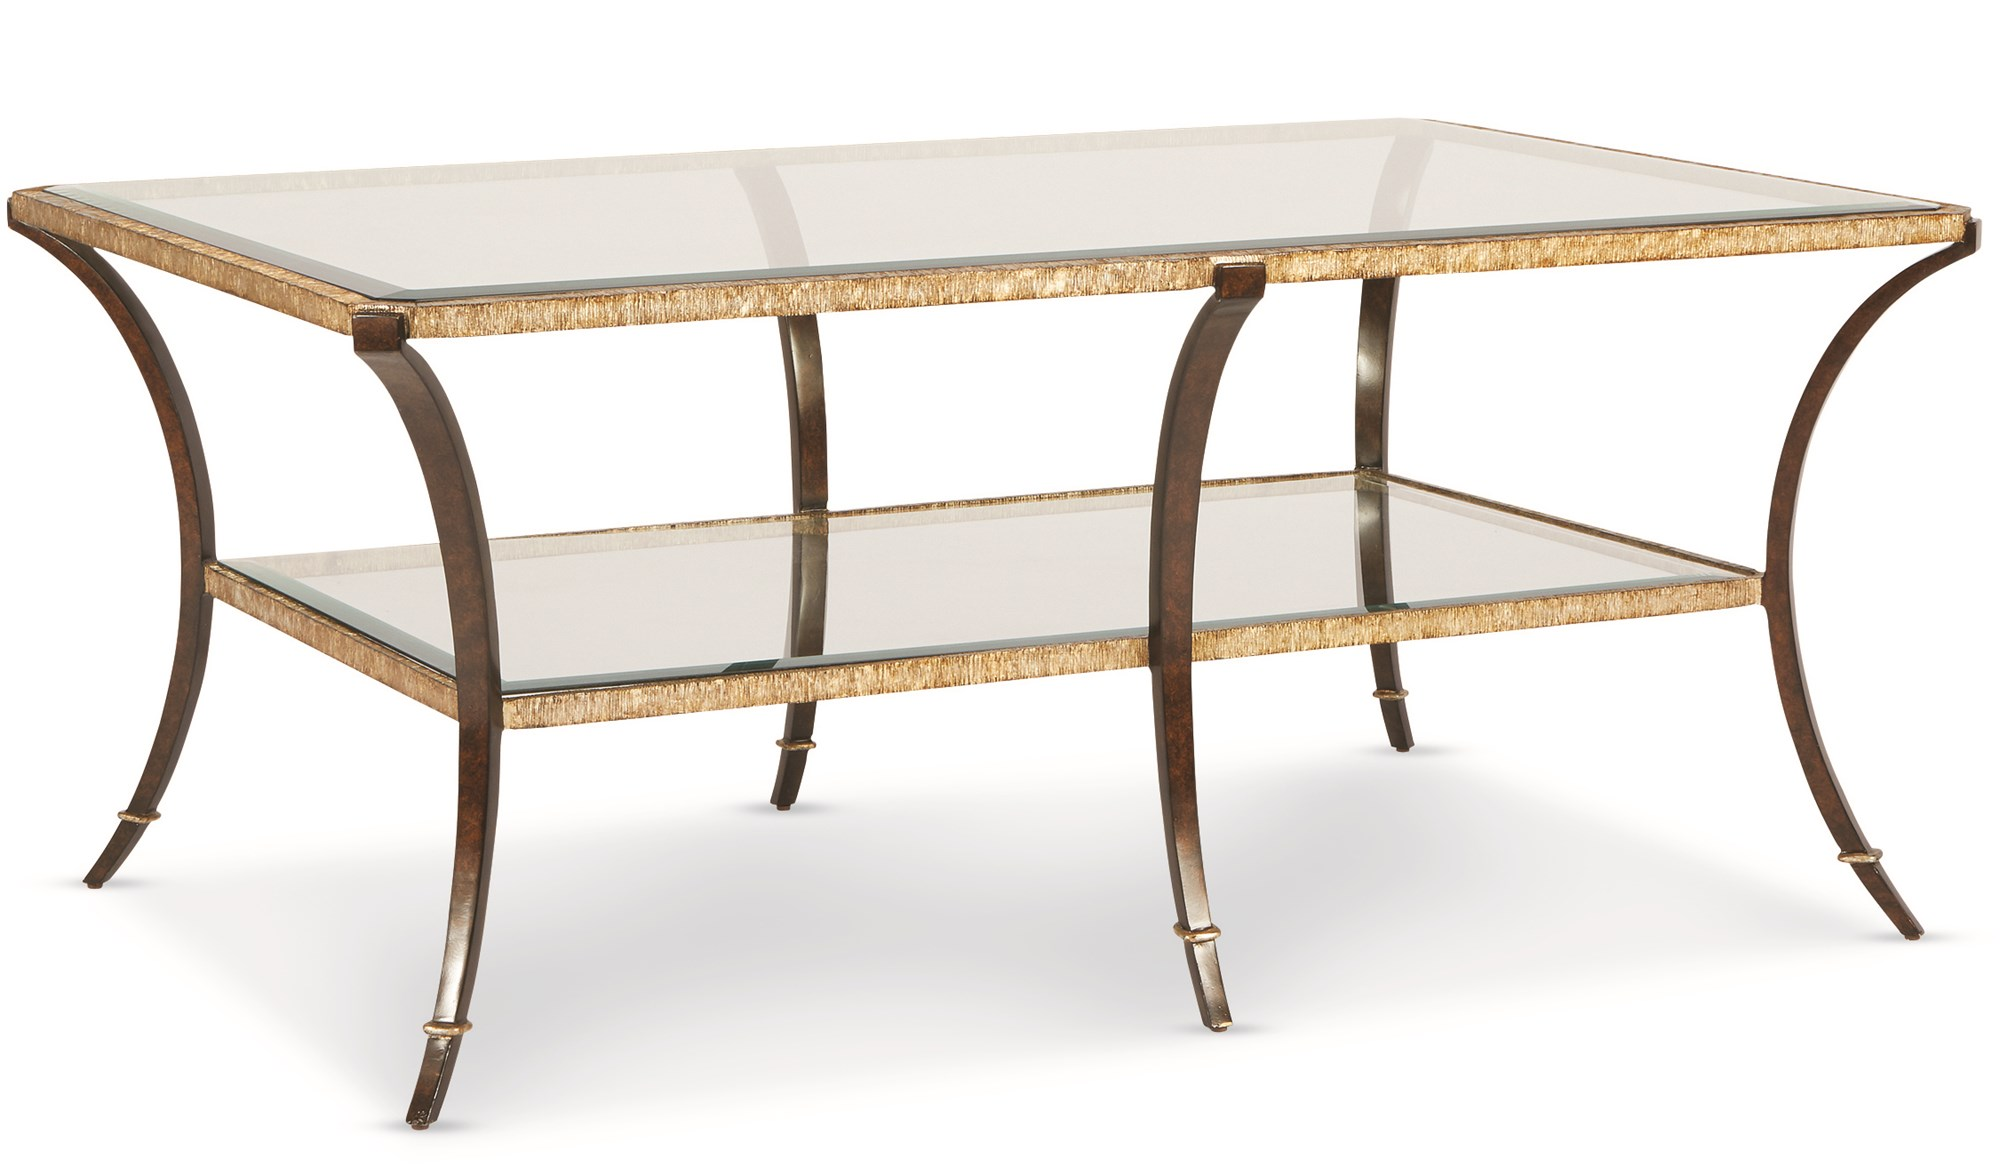 100 Sonoma Coffee Table Outdoor Dining Roundup Park  : 162 1250 050 00A from 45.32.79.15 size 2000 x 1167 jpeg 194kB